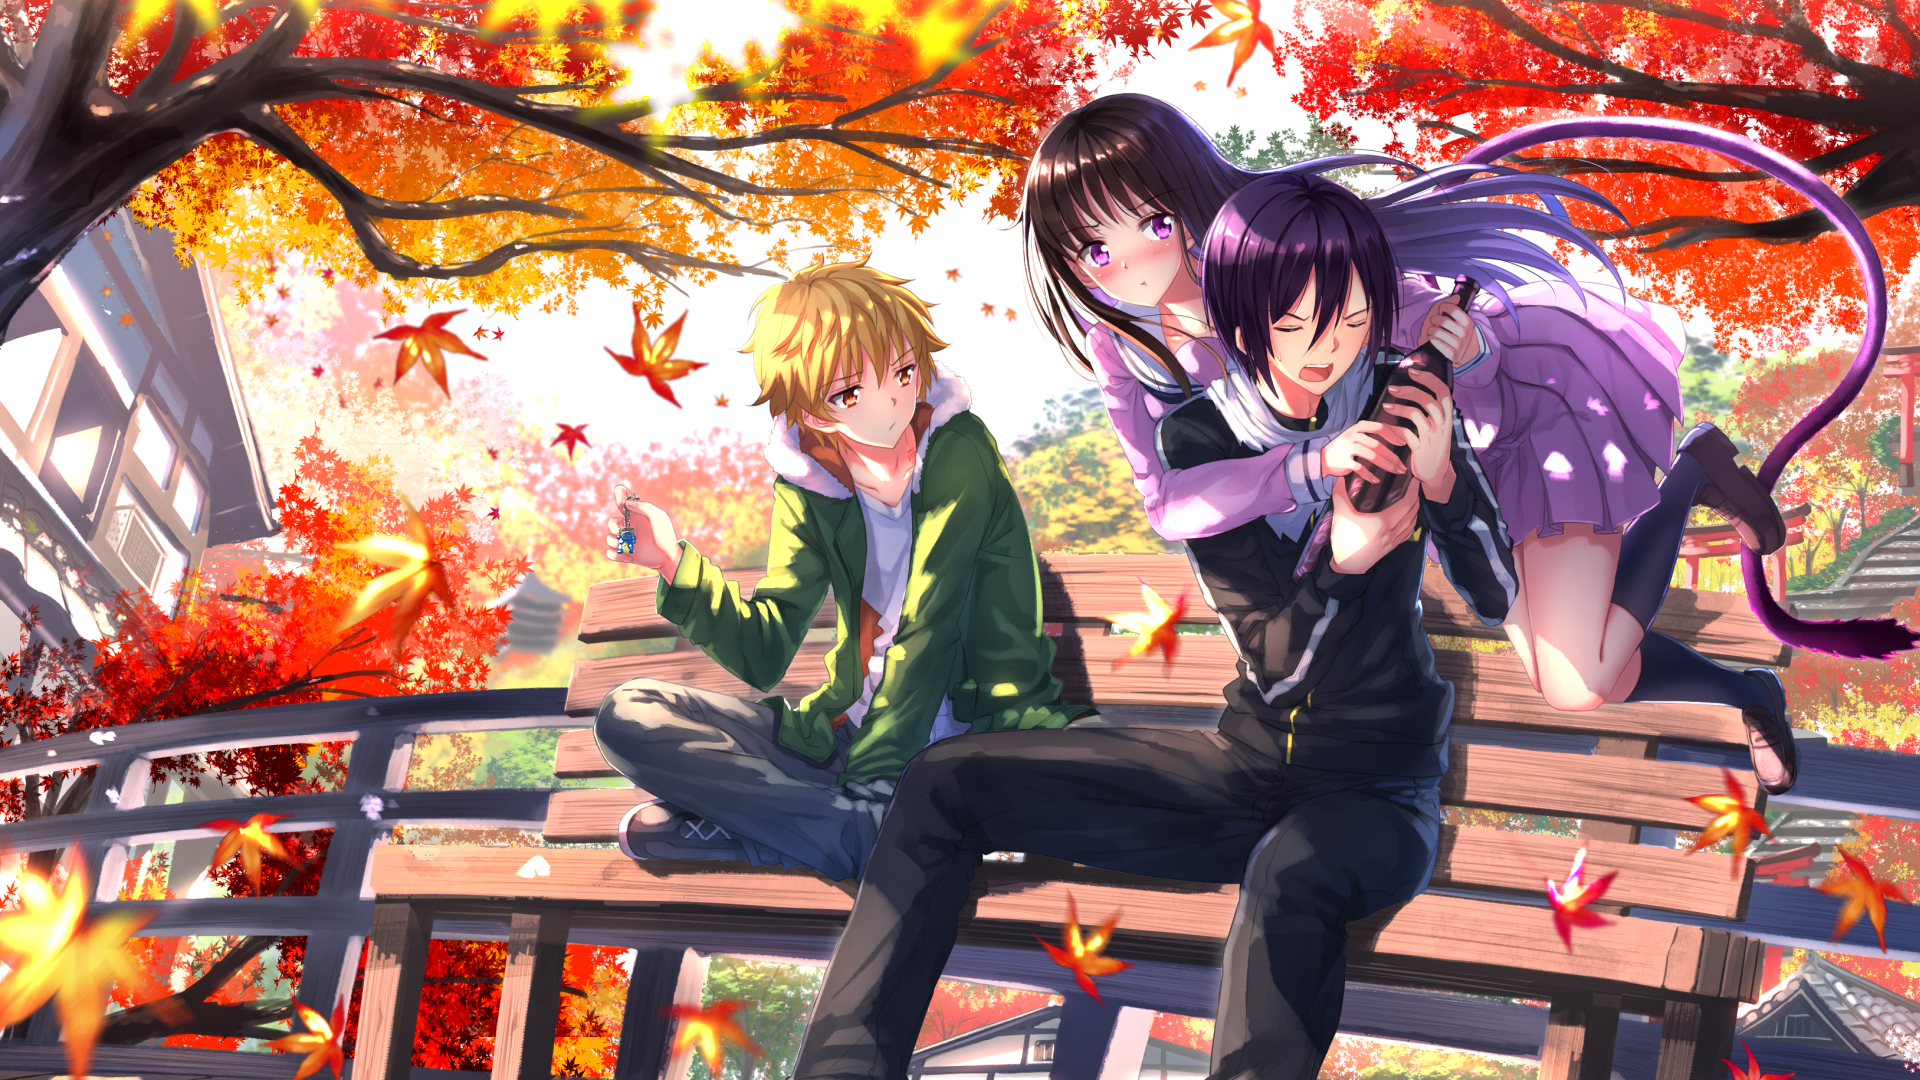 Hd Wallpaper Background Image Id X Anime Noragami